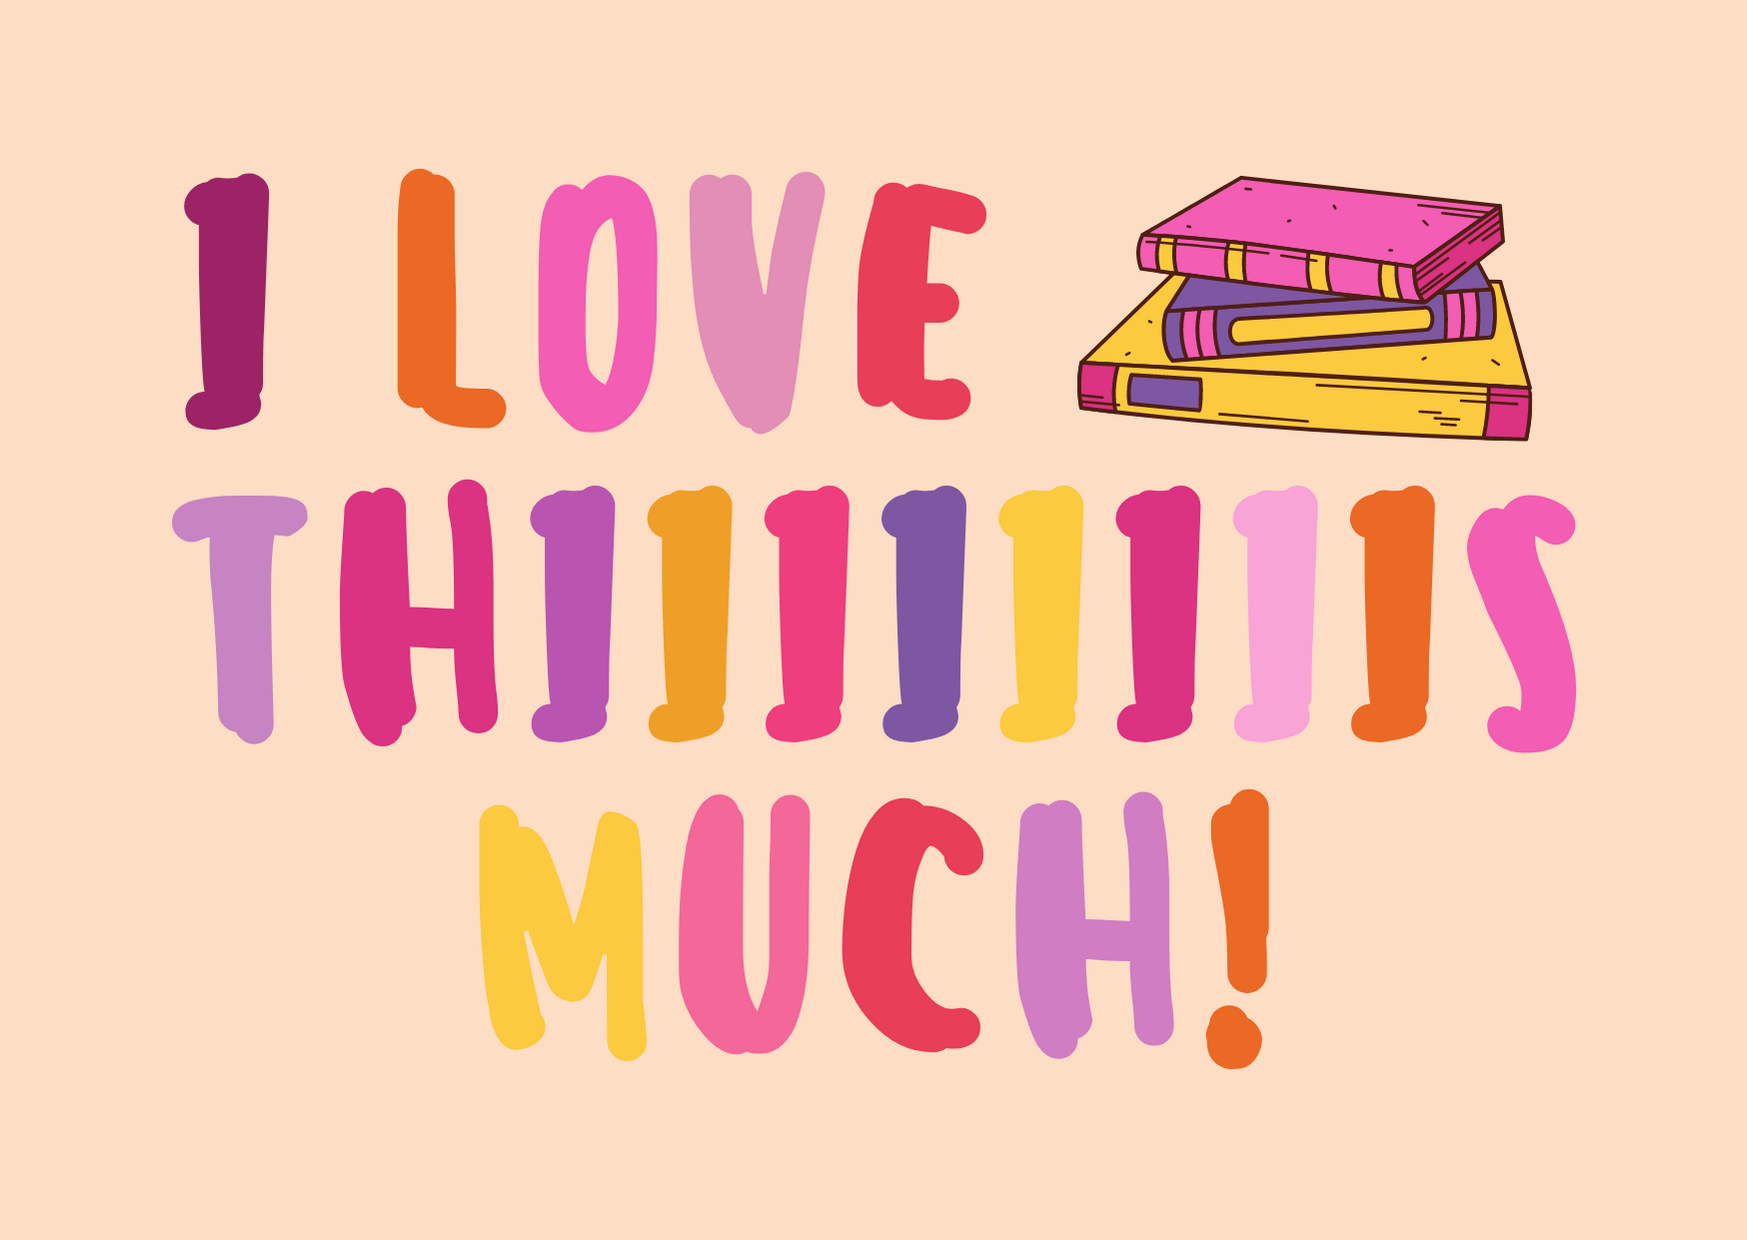 Catch up on your 2021 reading goals with these short and sweet reads